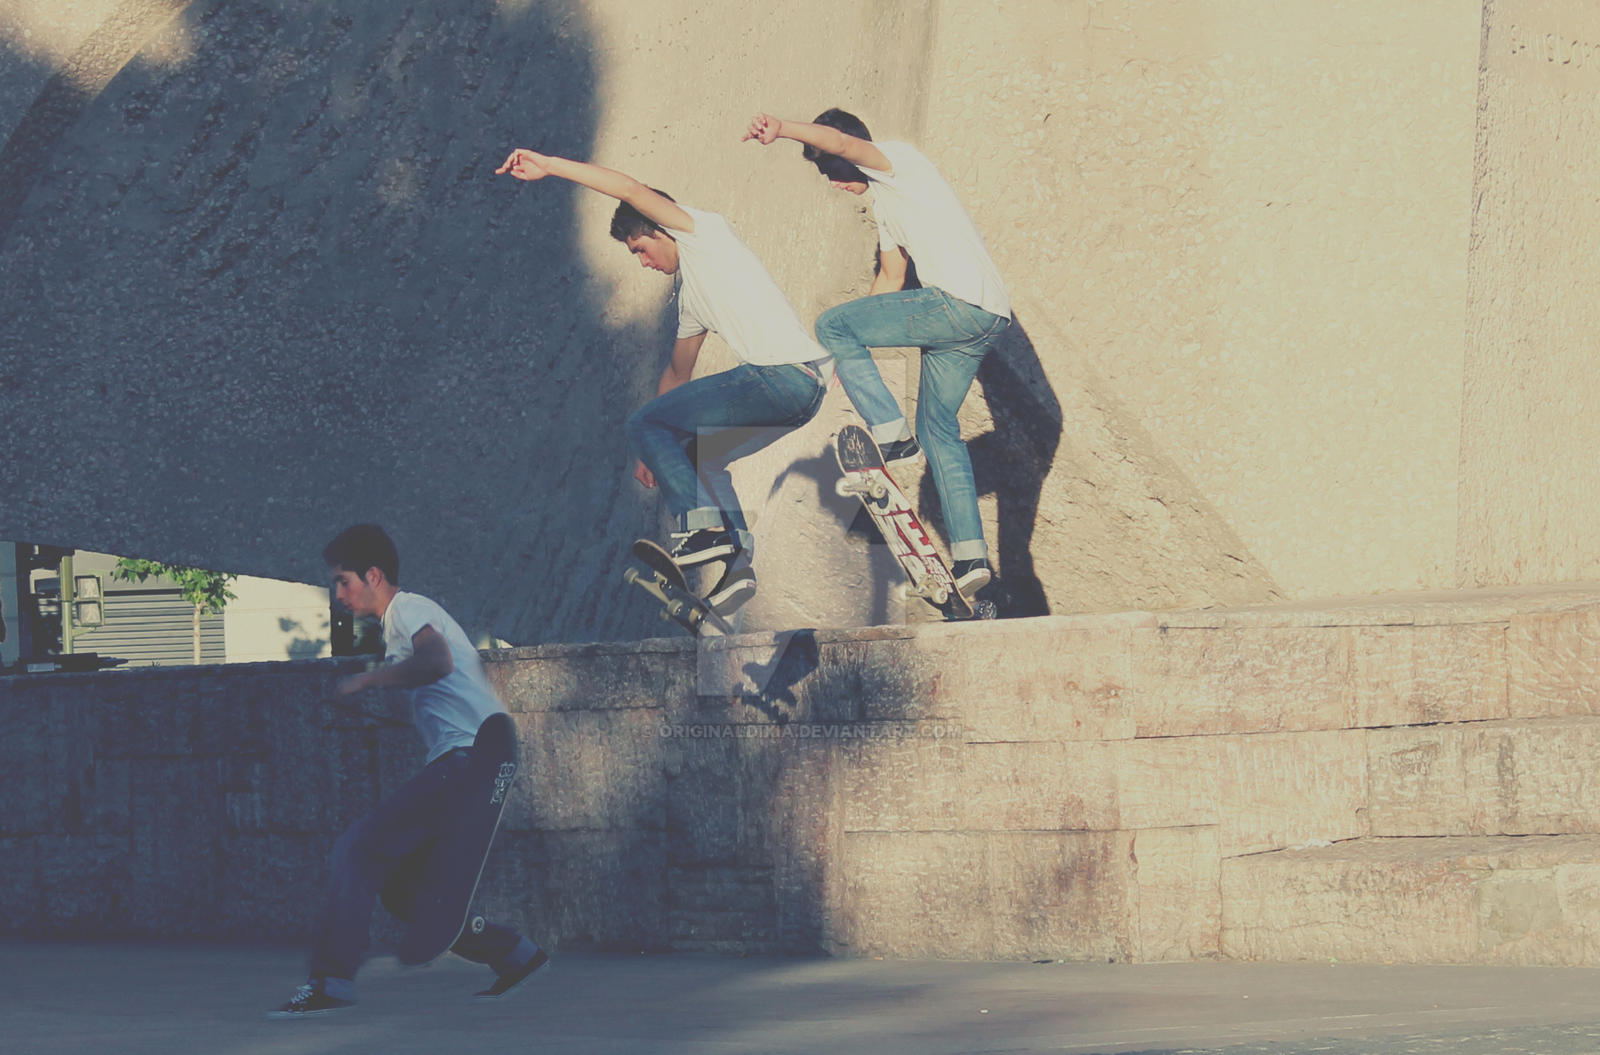 Skate. by originaldixia